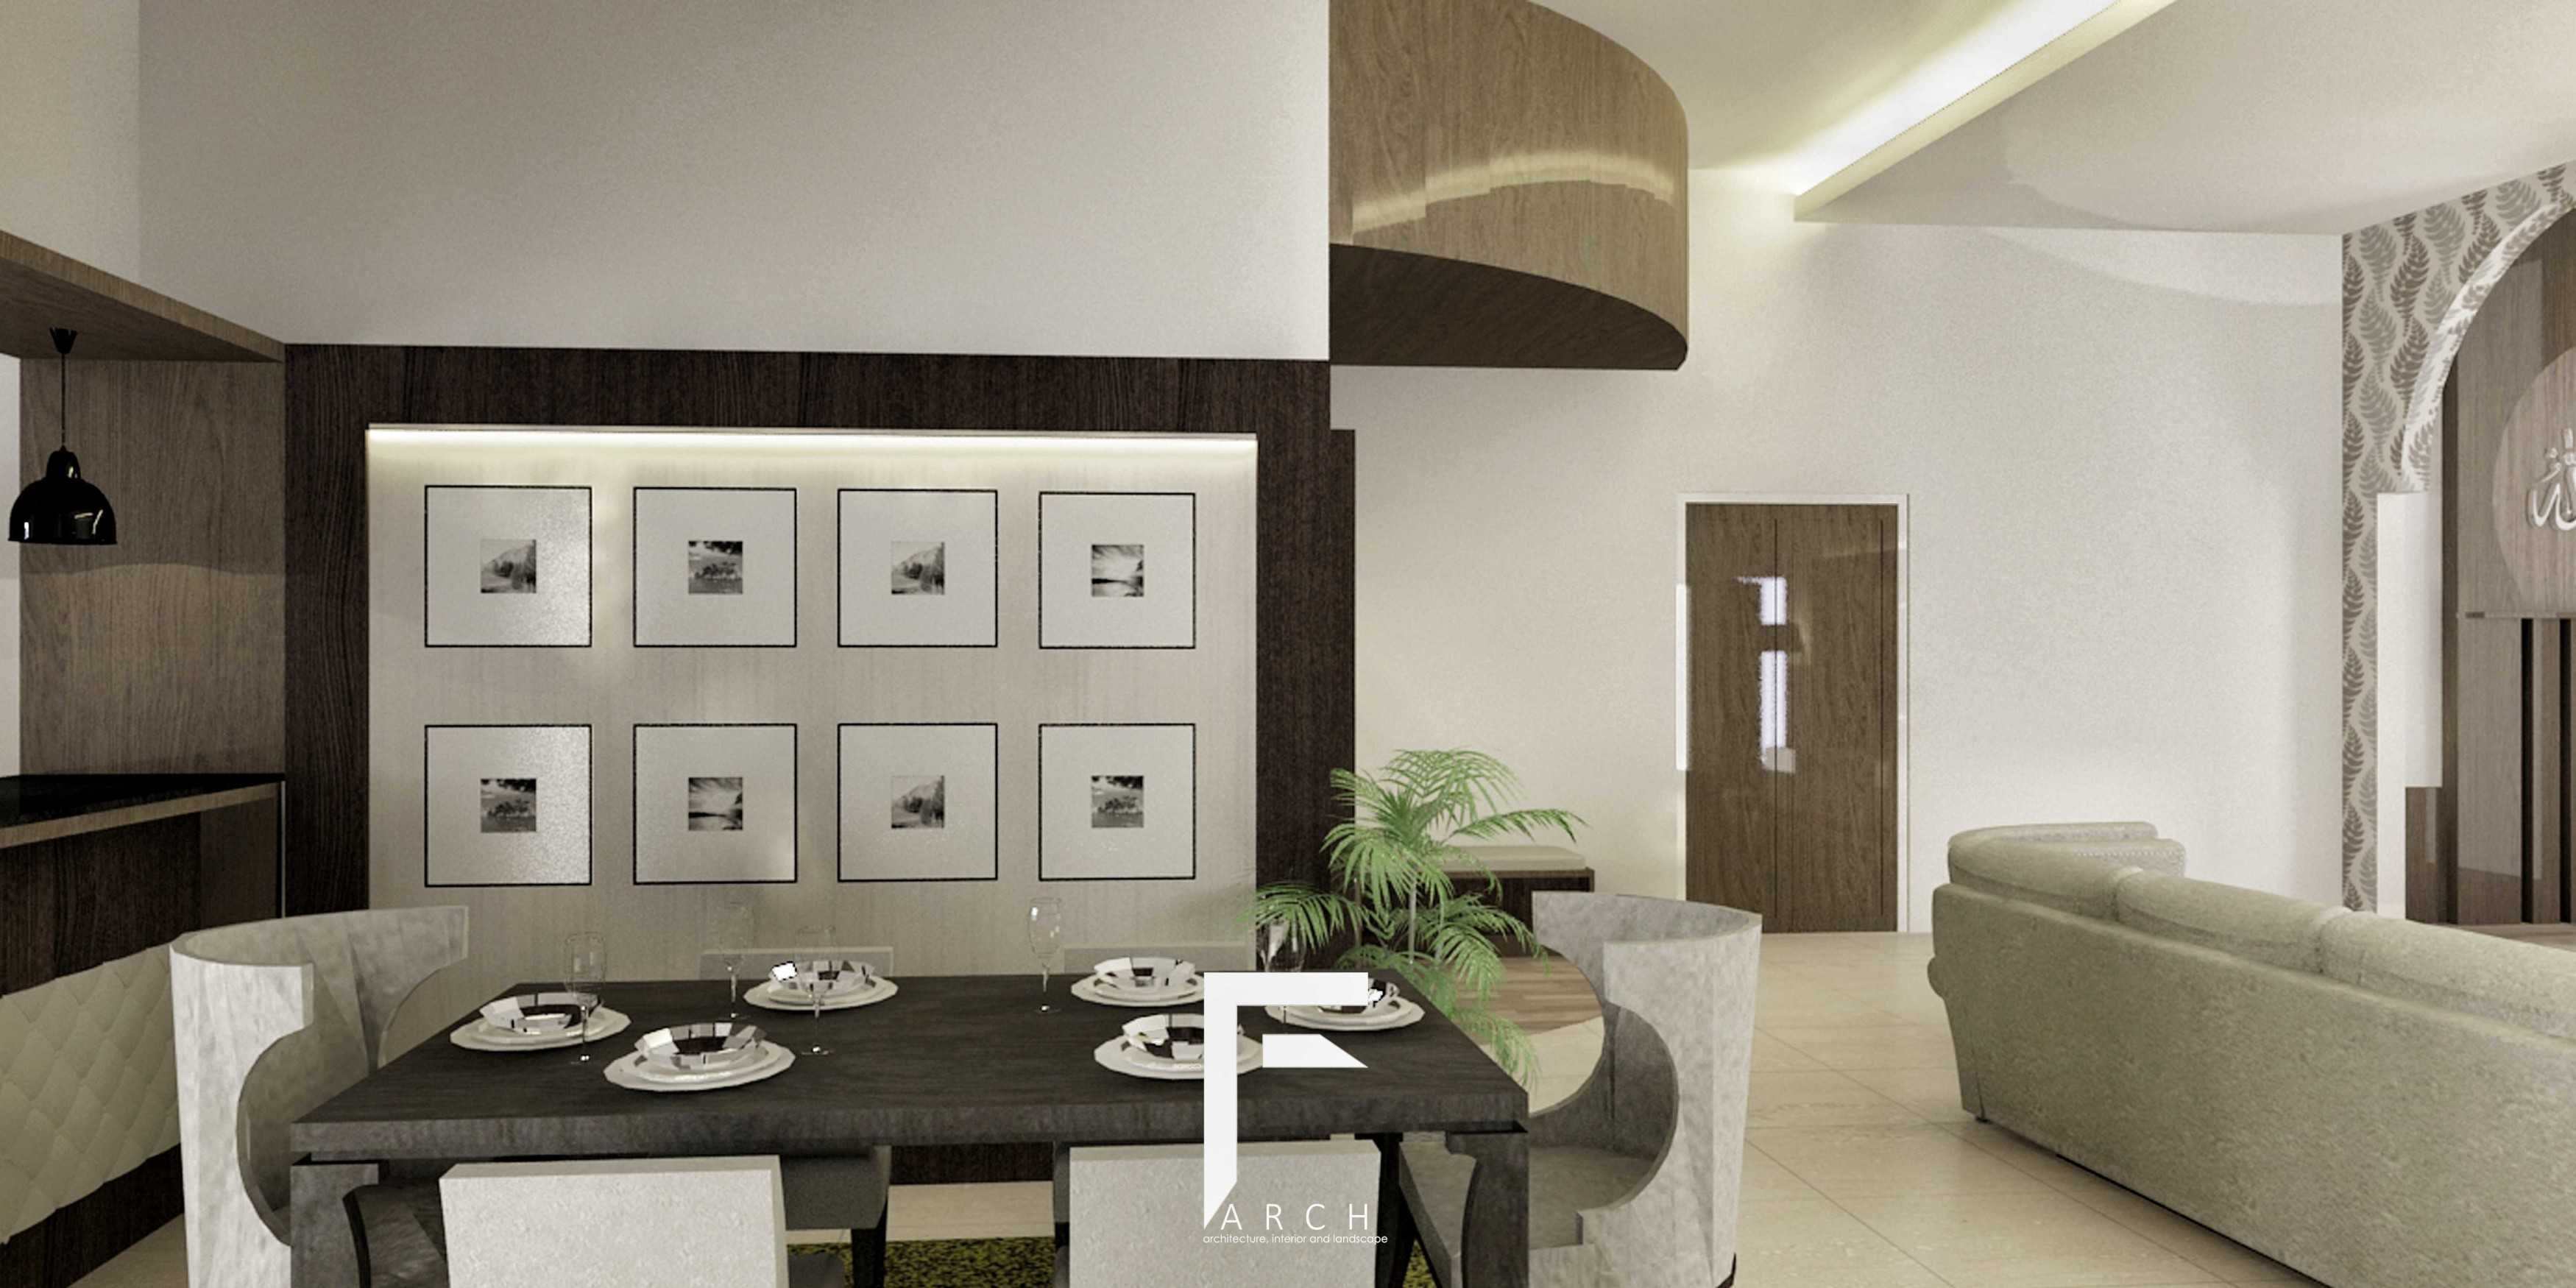 Forr Arch Modern Home Interior Design  Demak Regency, Central Java, Indonesia 11-01   30459